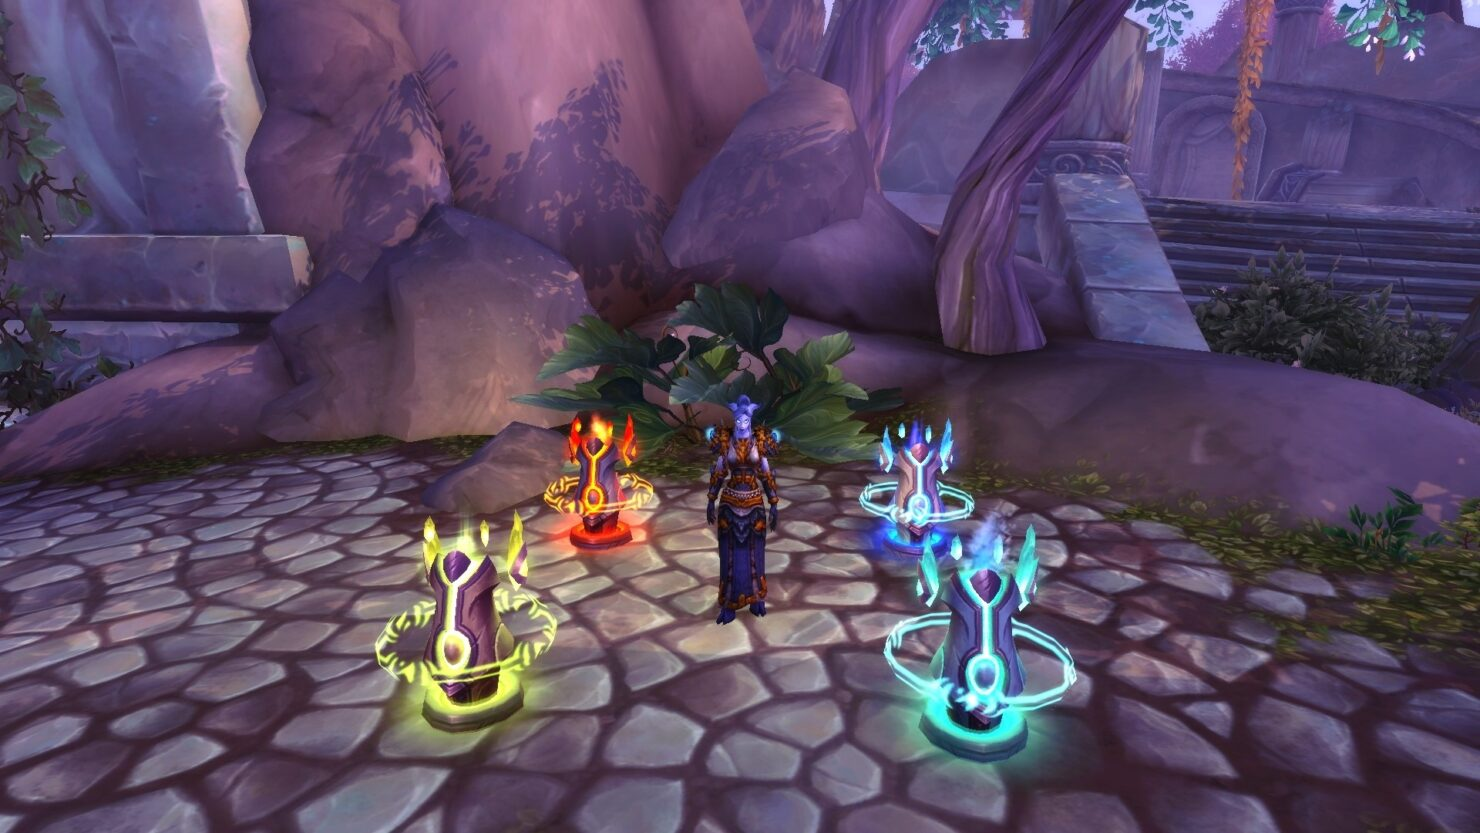 battle-for-azeroth-patch-8-1-build-shaman-totems-2